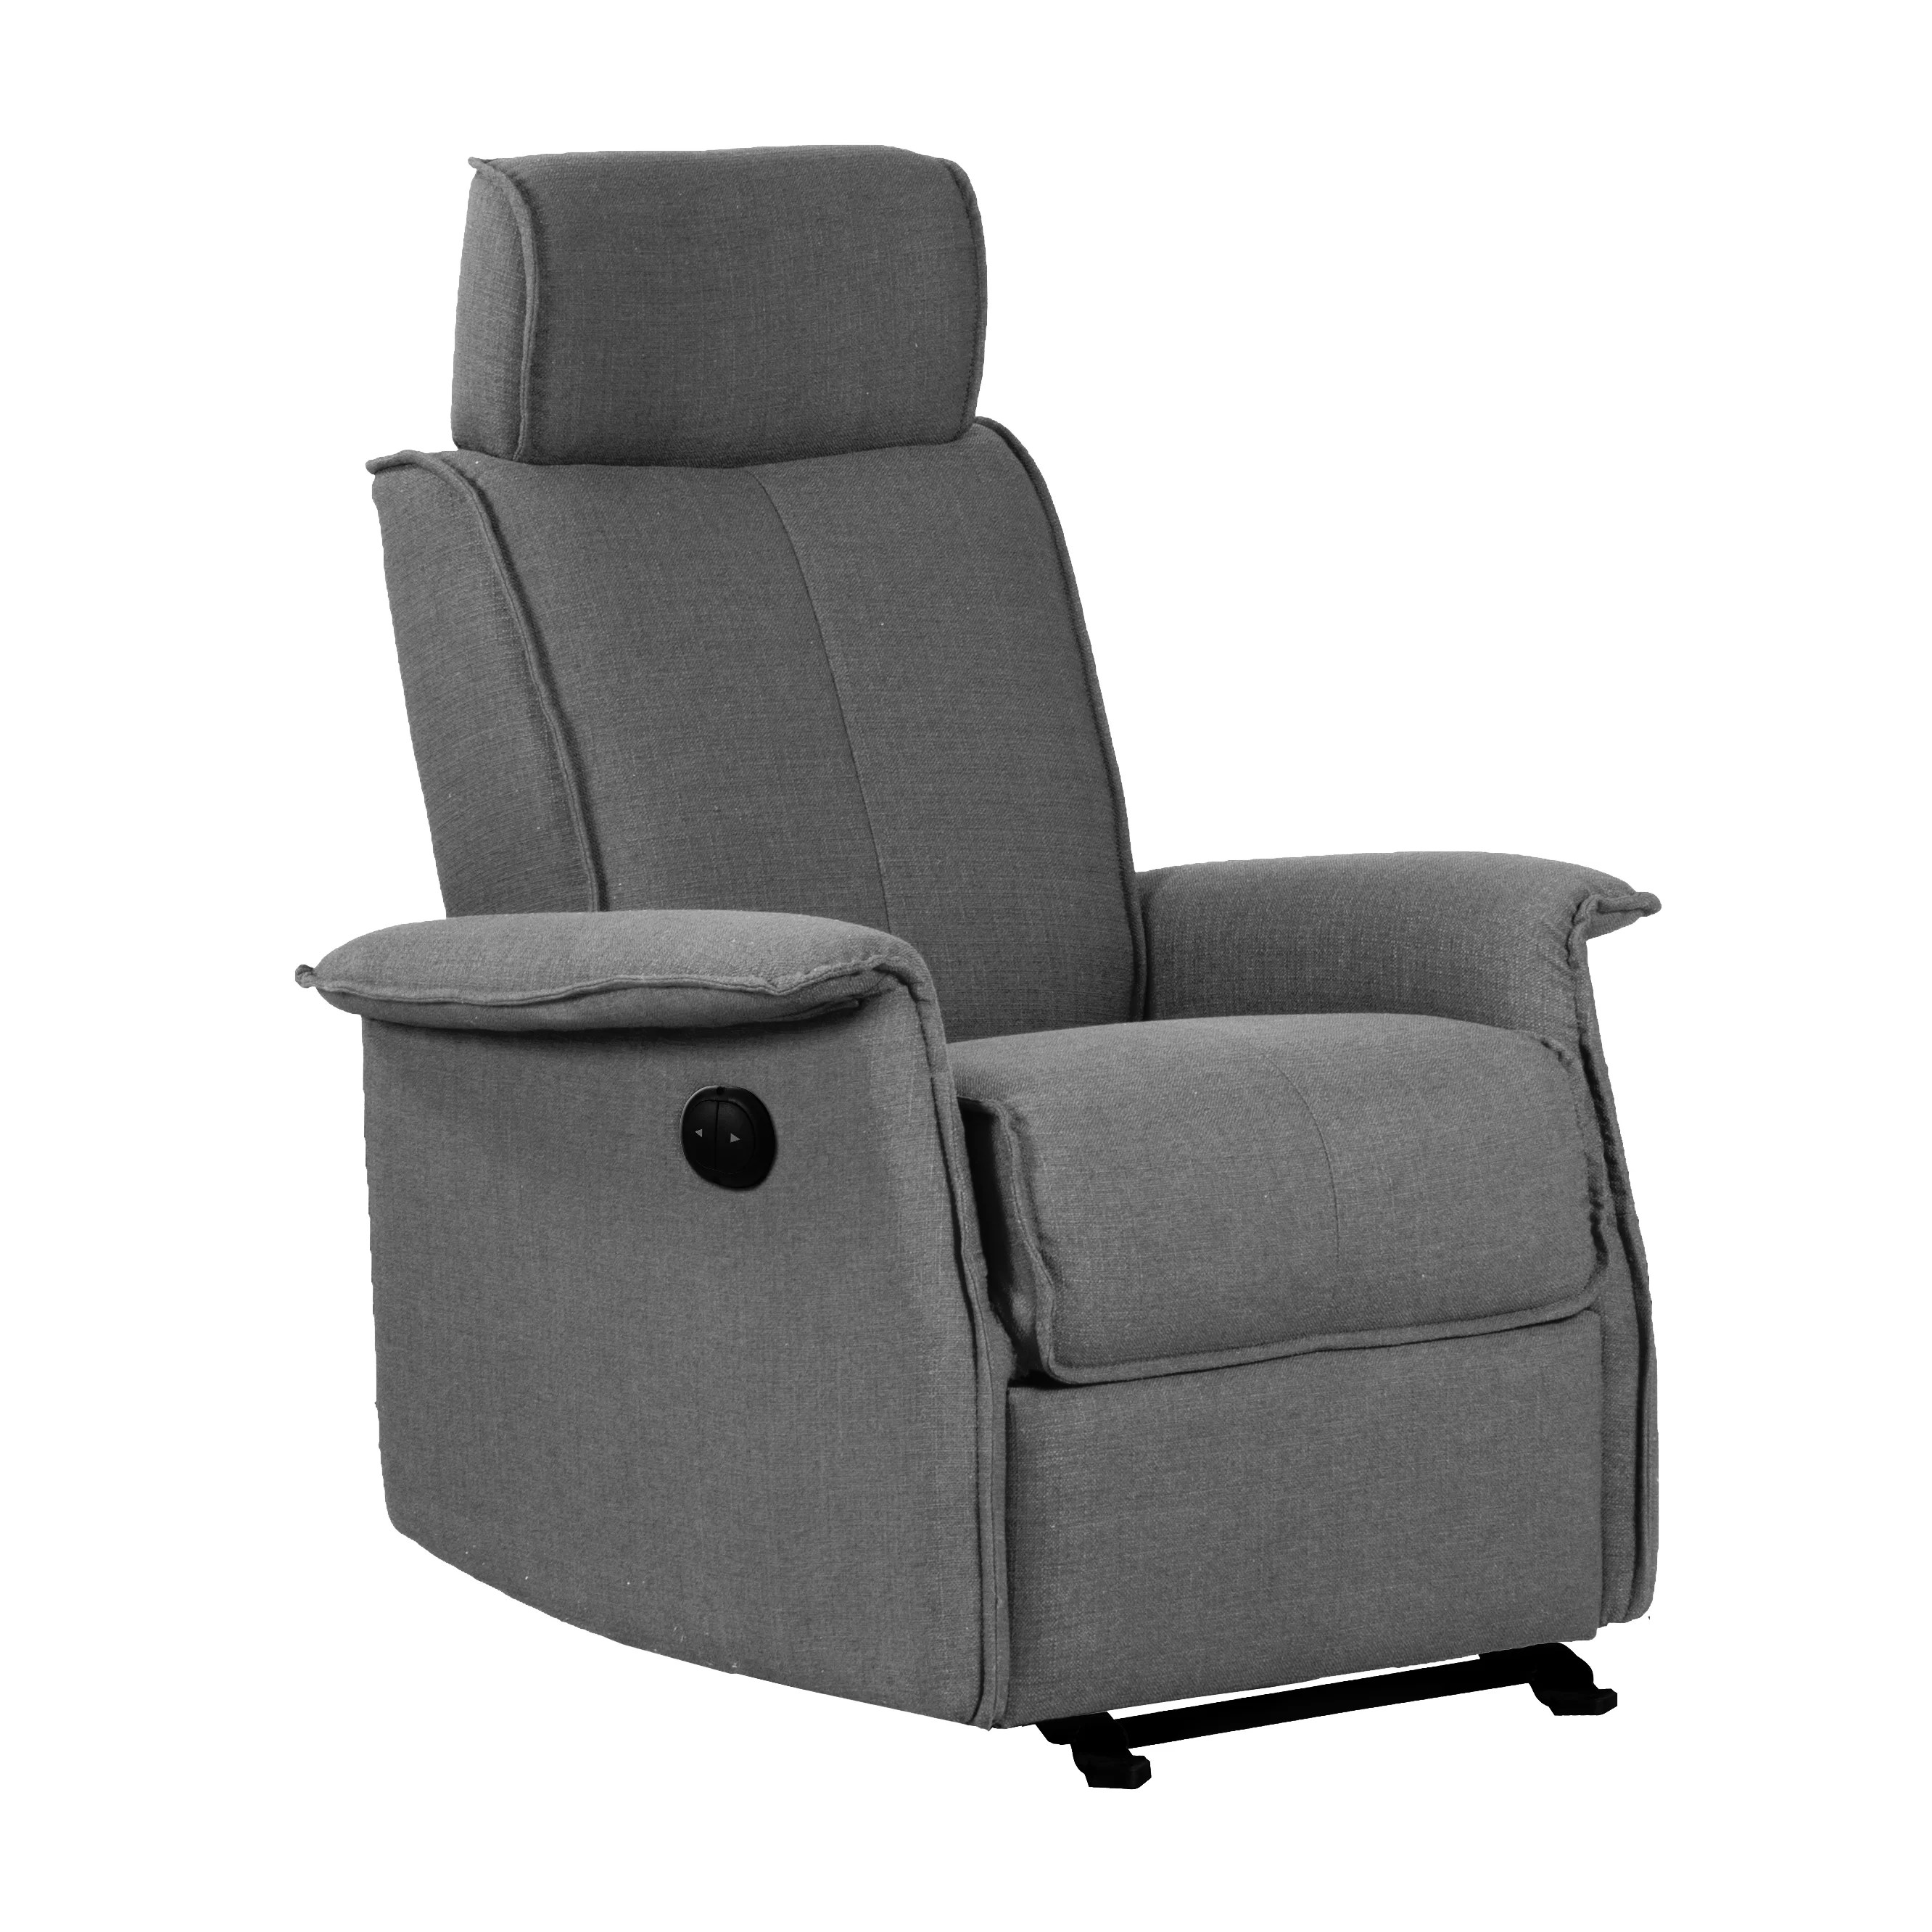 push button recliner chairs special for disabled shermag electric wayfair